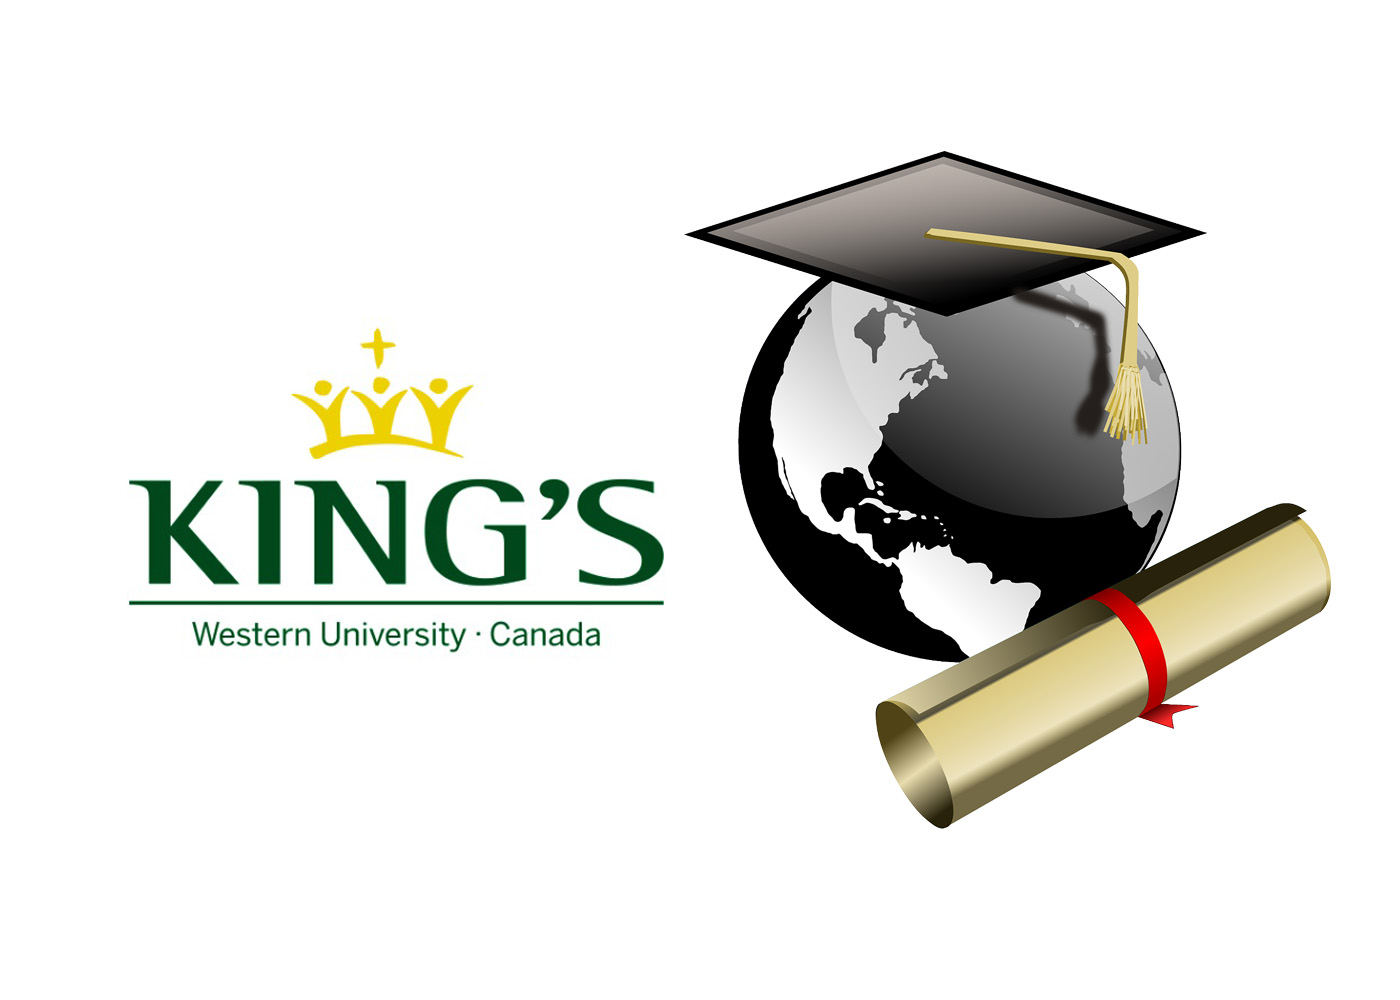 CDICS KING'S UNIVERSITY COLLEGE AT WESTERN UNIVERSITY